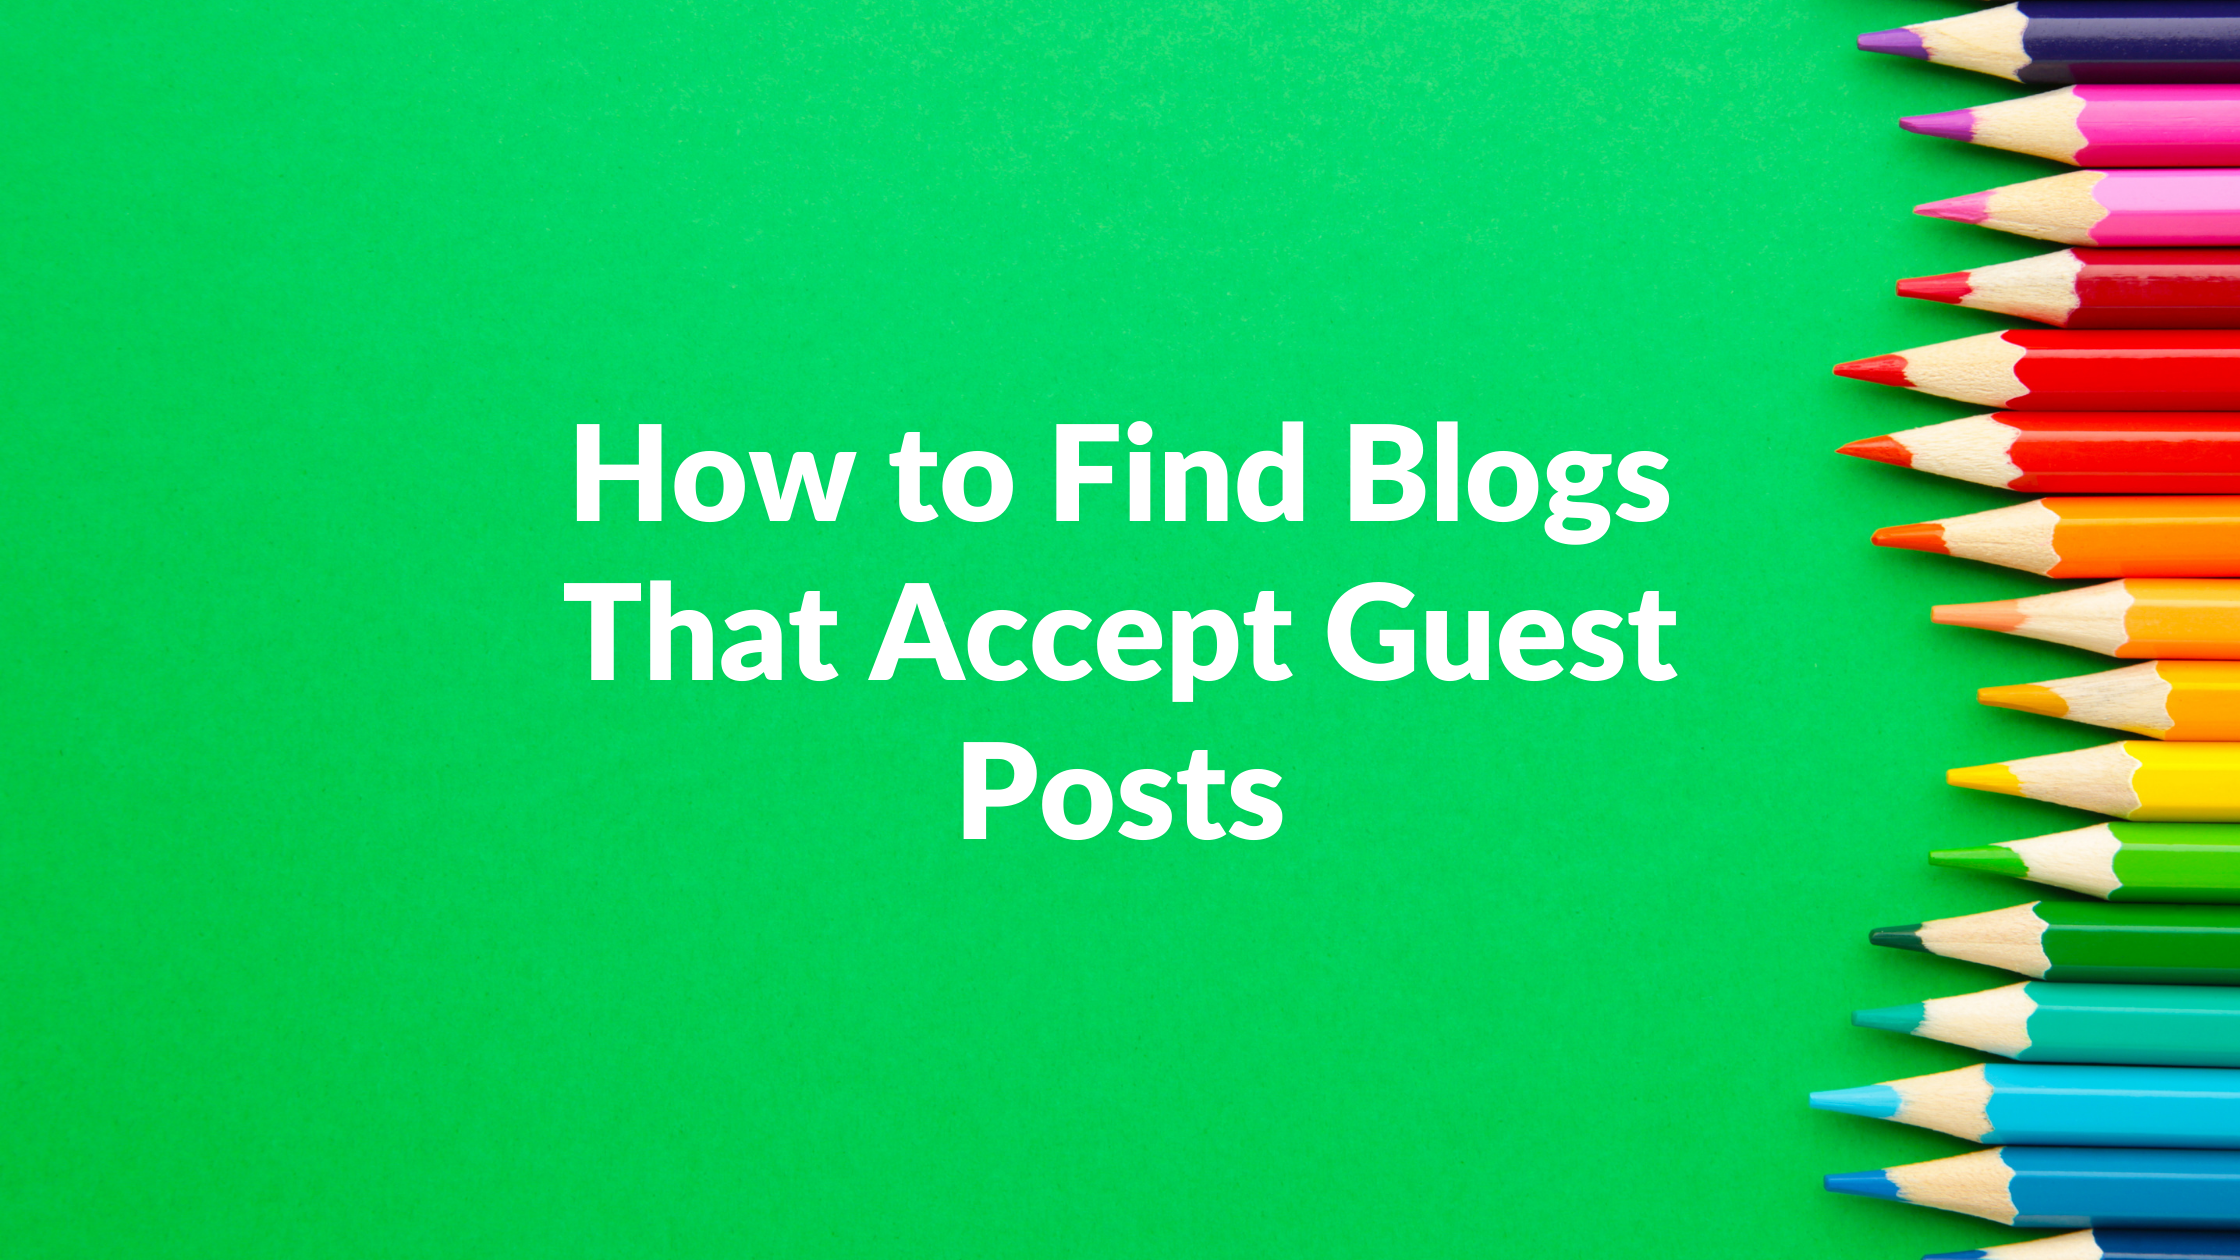 how to find blogs that accept guest posts, how to find blogs to guest post on, list of blogs that accept guest posts, free guest posting sites list 2021, How do I find a guest post opportunity